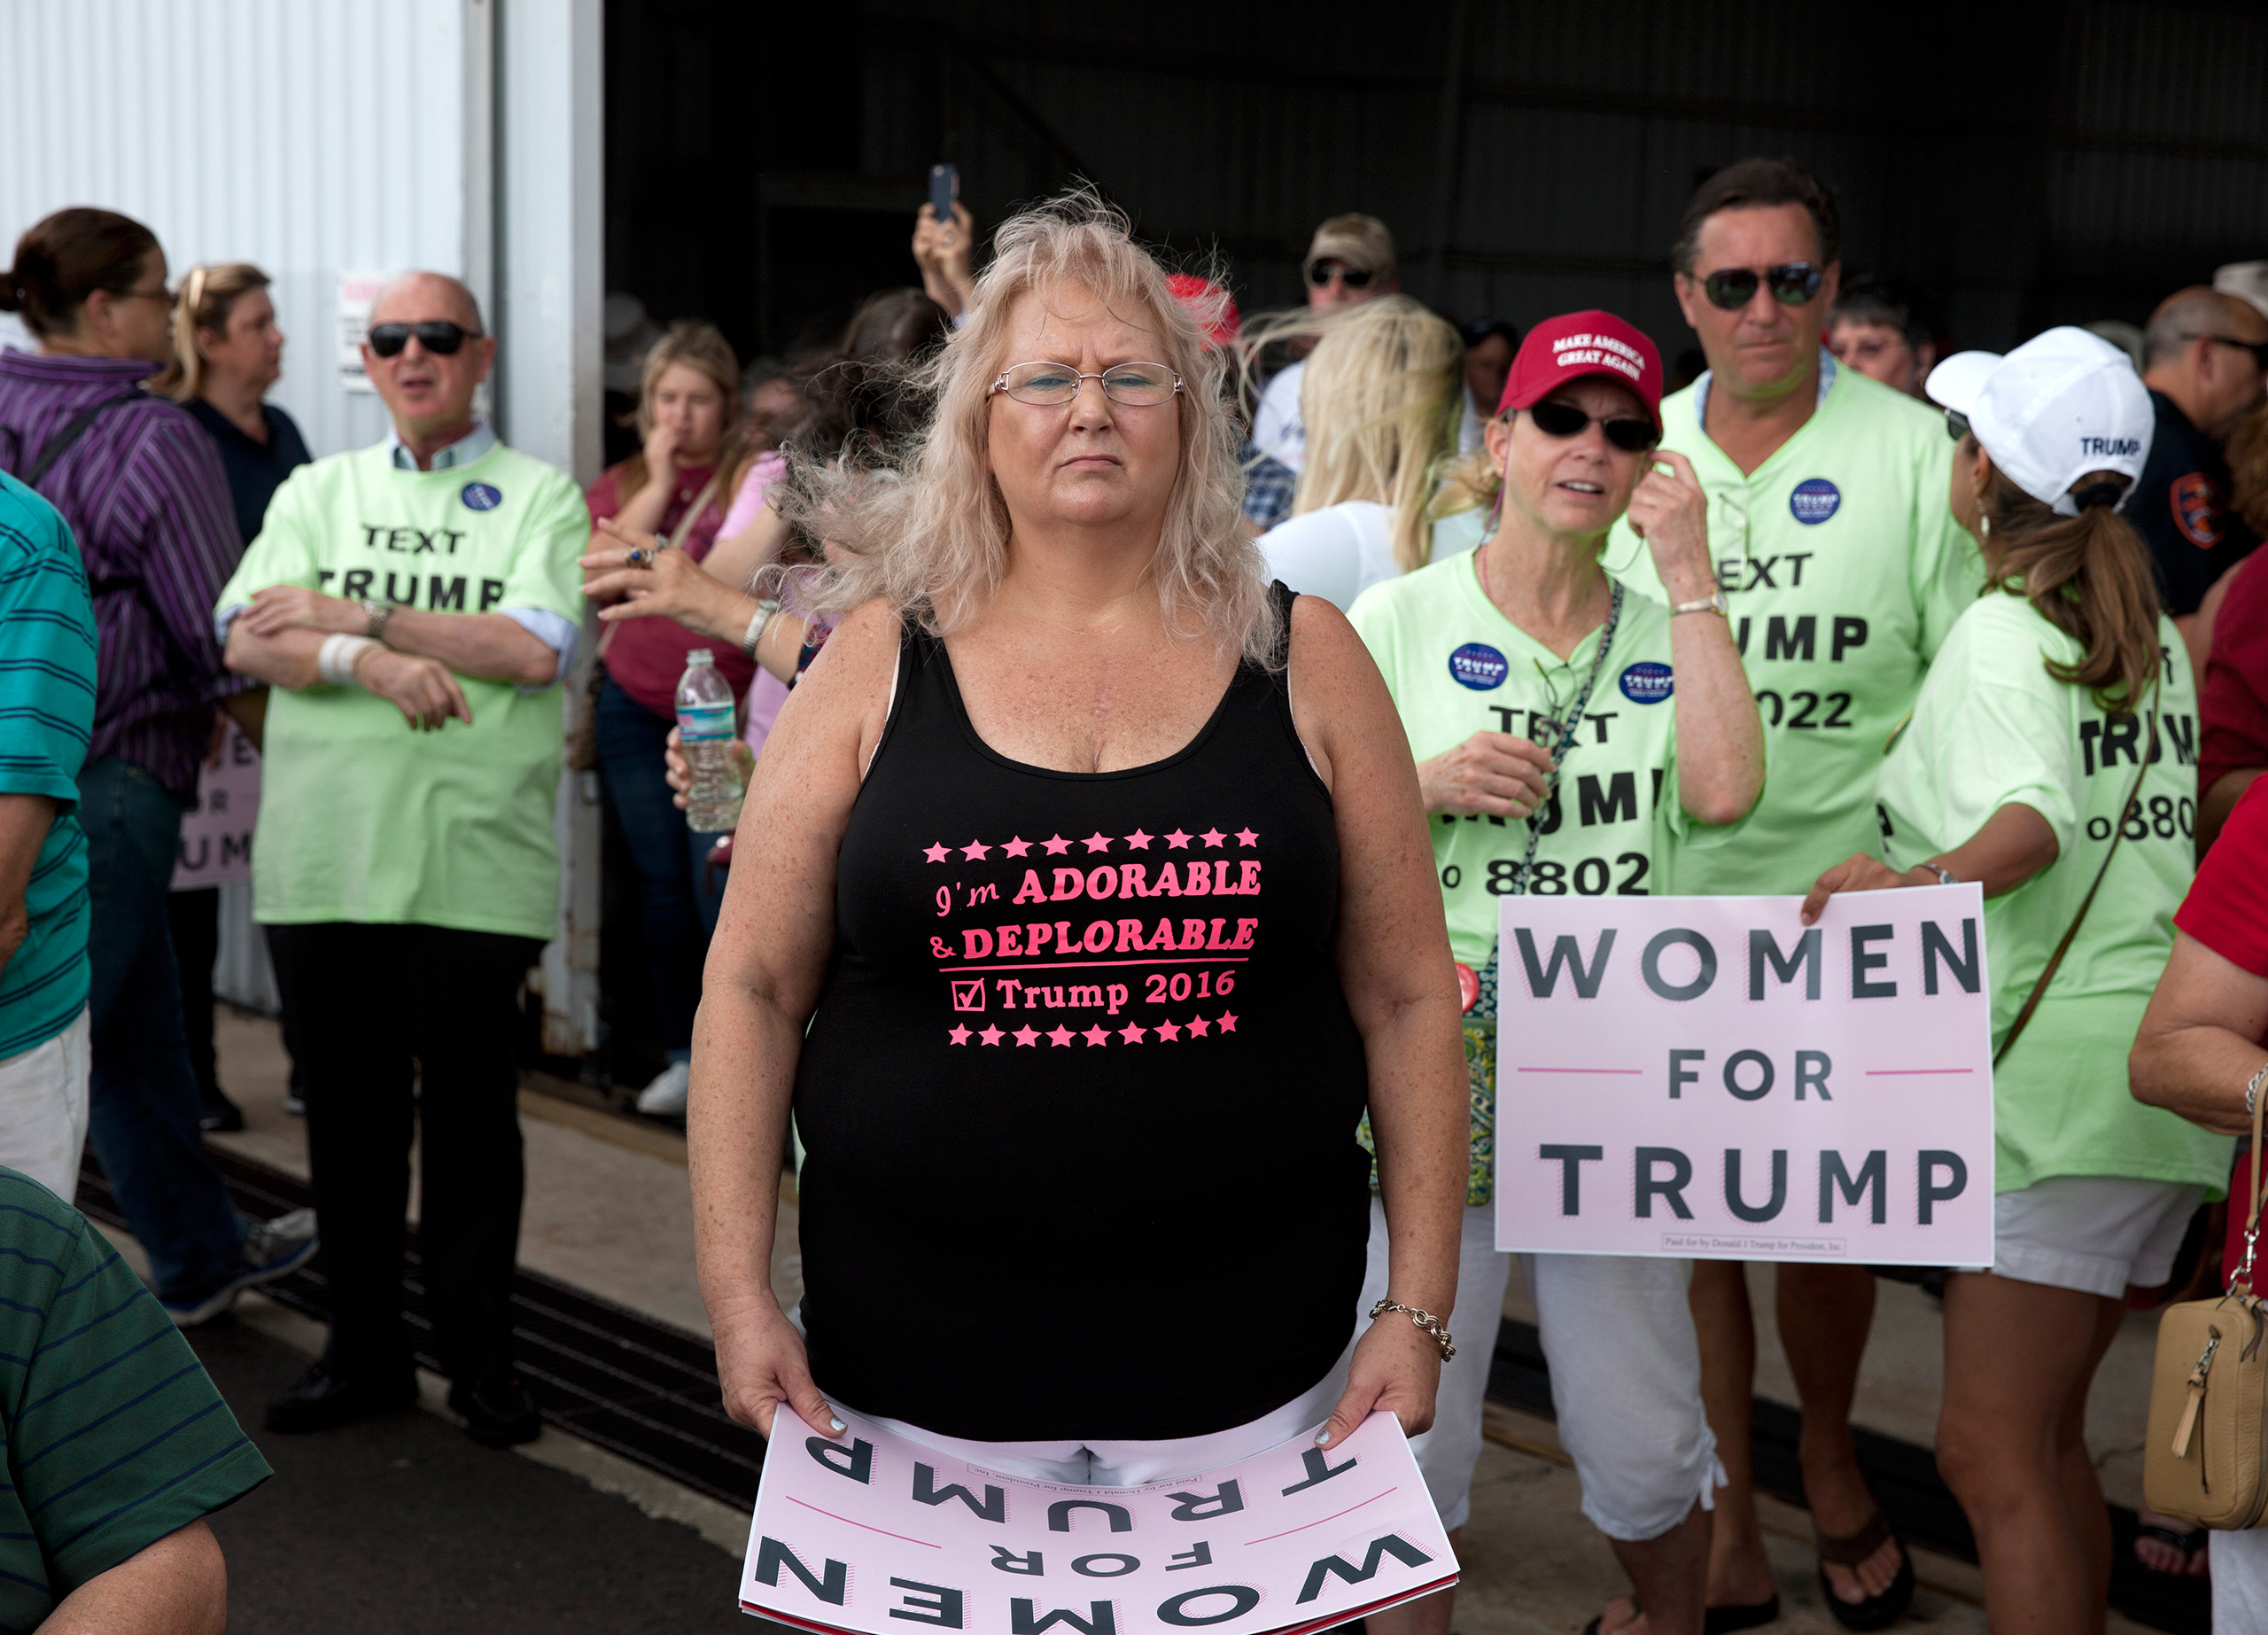 Trump for President rally in Lakeland, Florida, Oct. 12, 2016.From  The 82 Most Unforgettable Photos From the Election